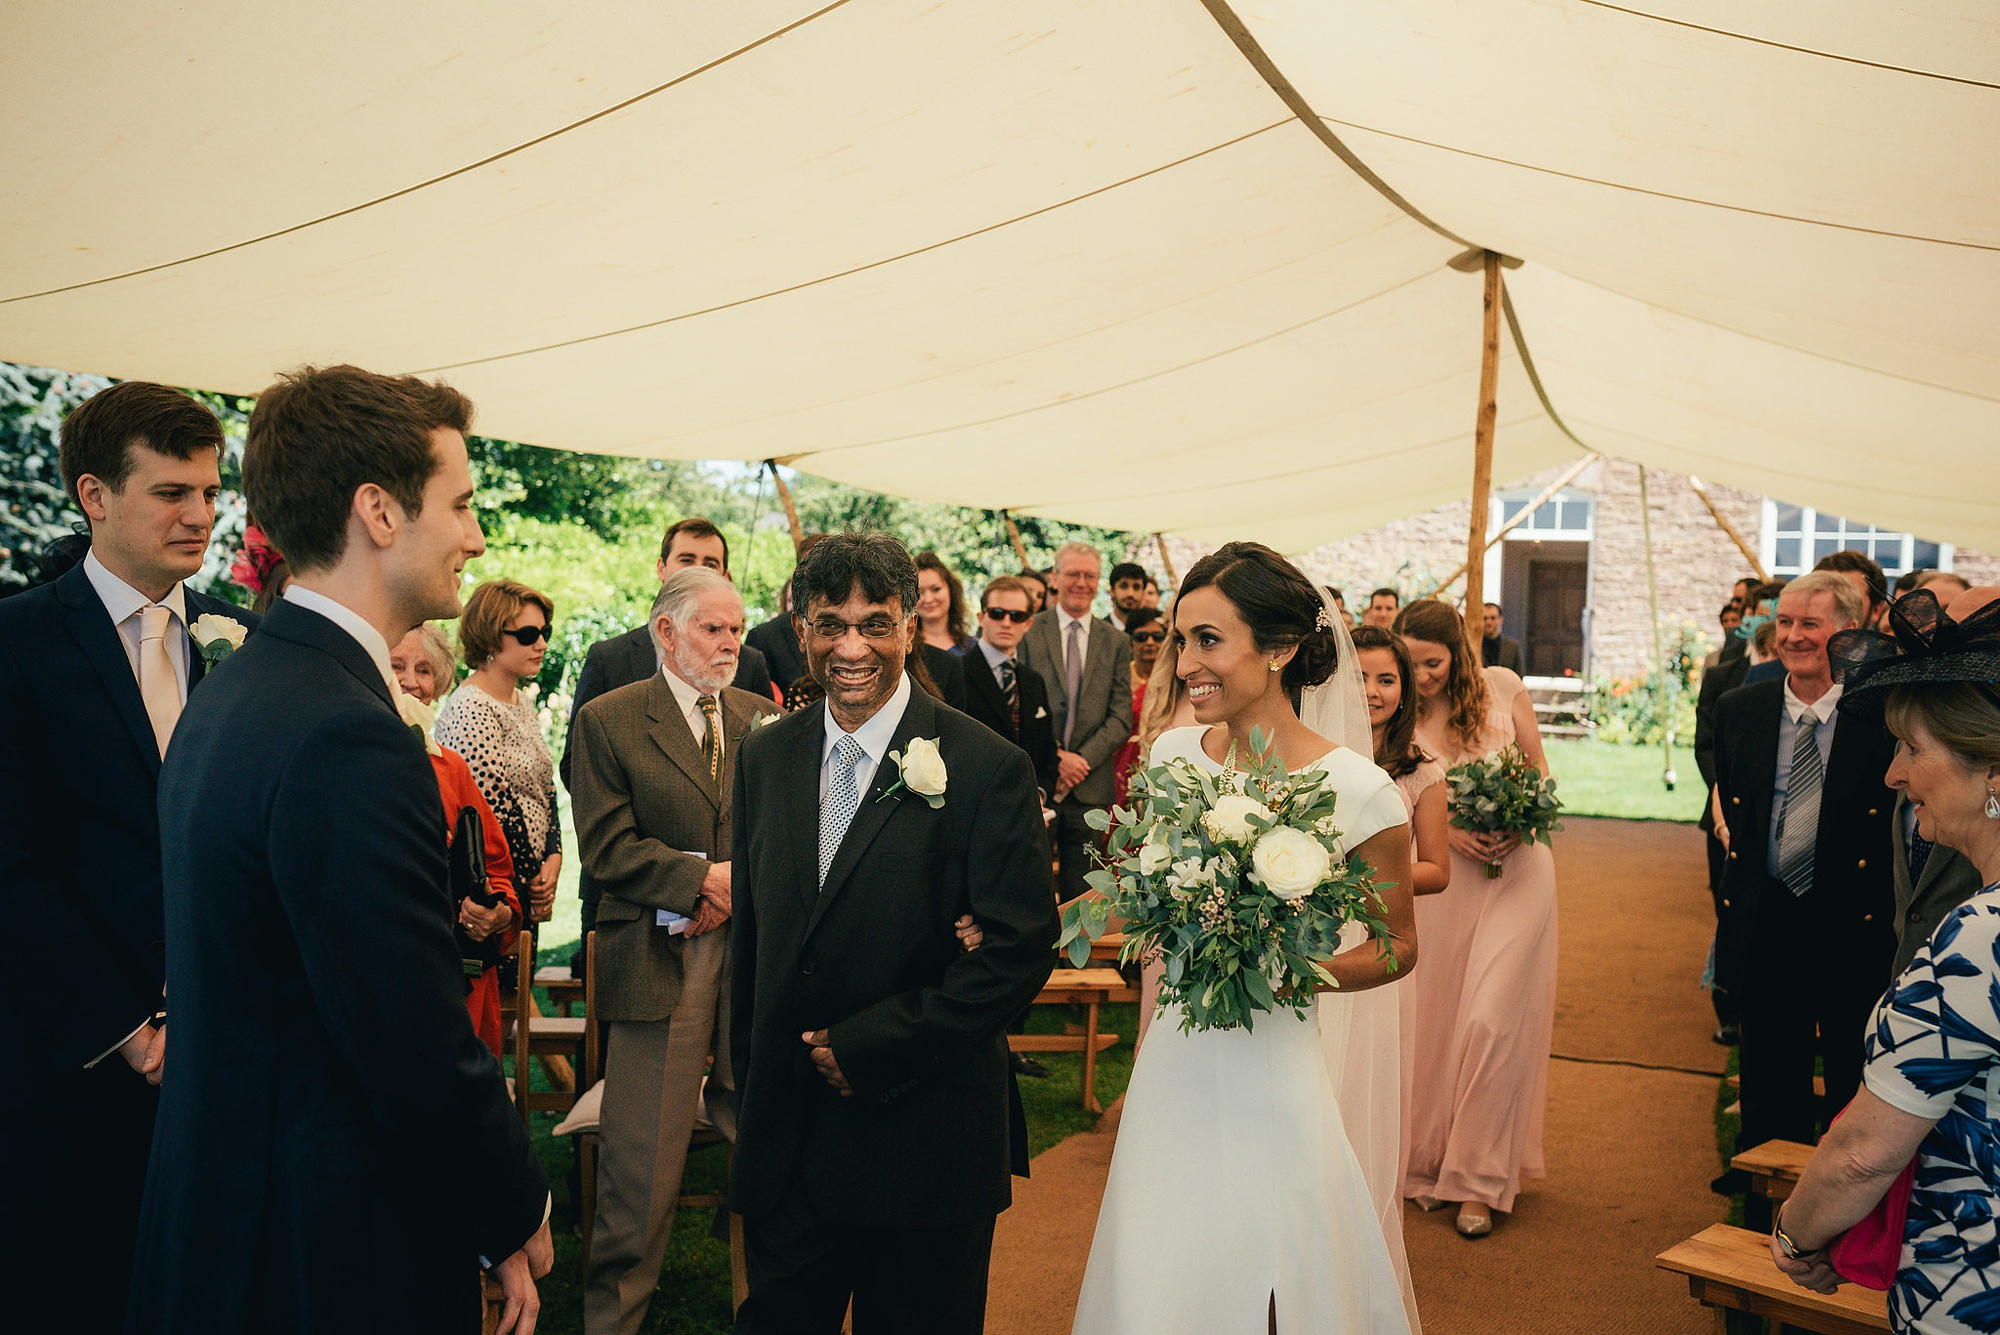 Relaxed photography wedding